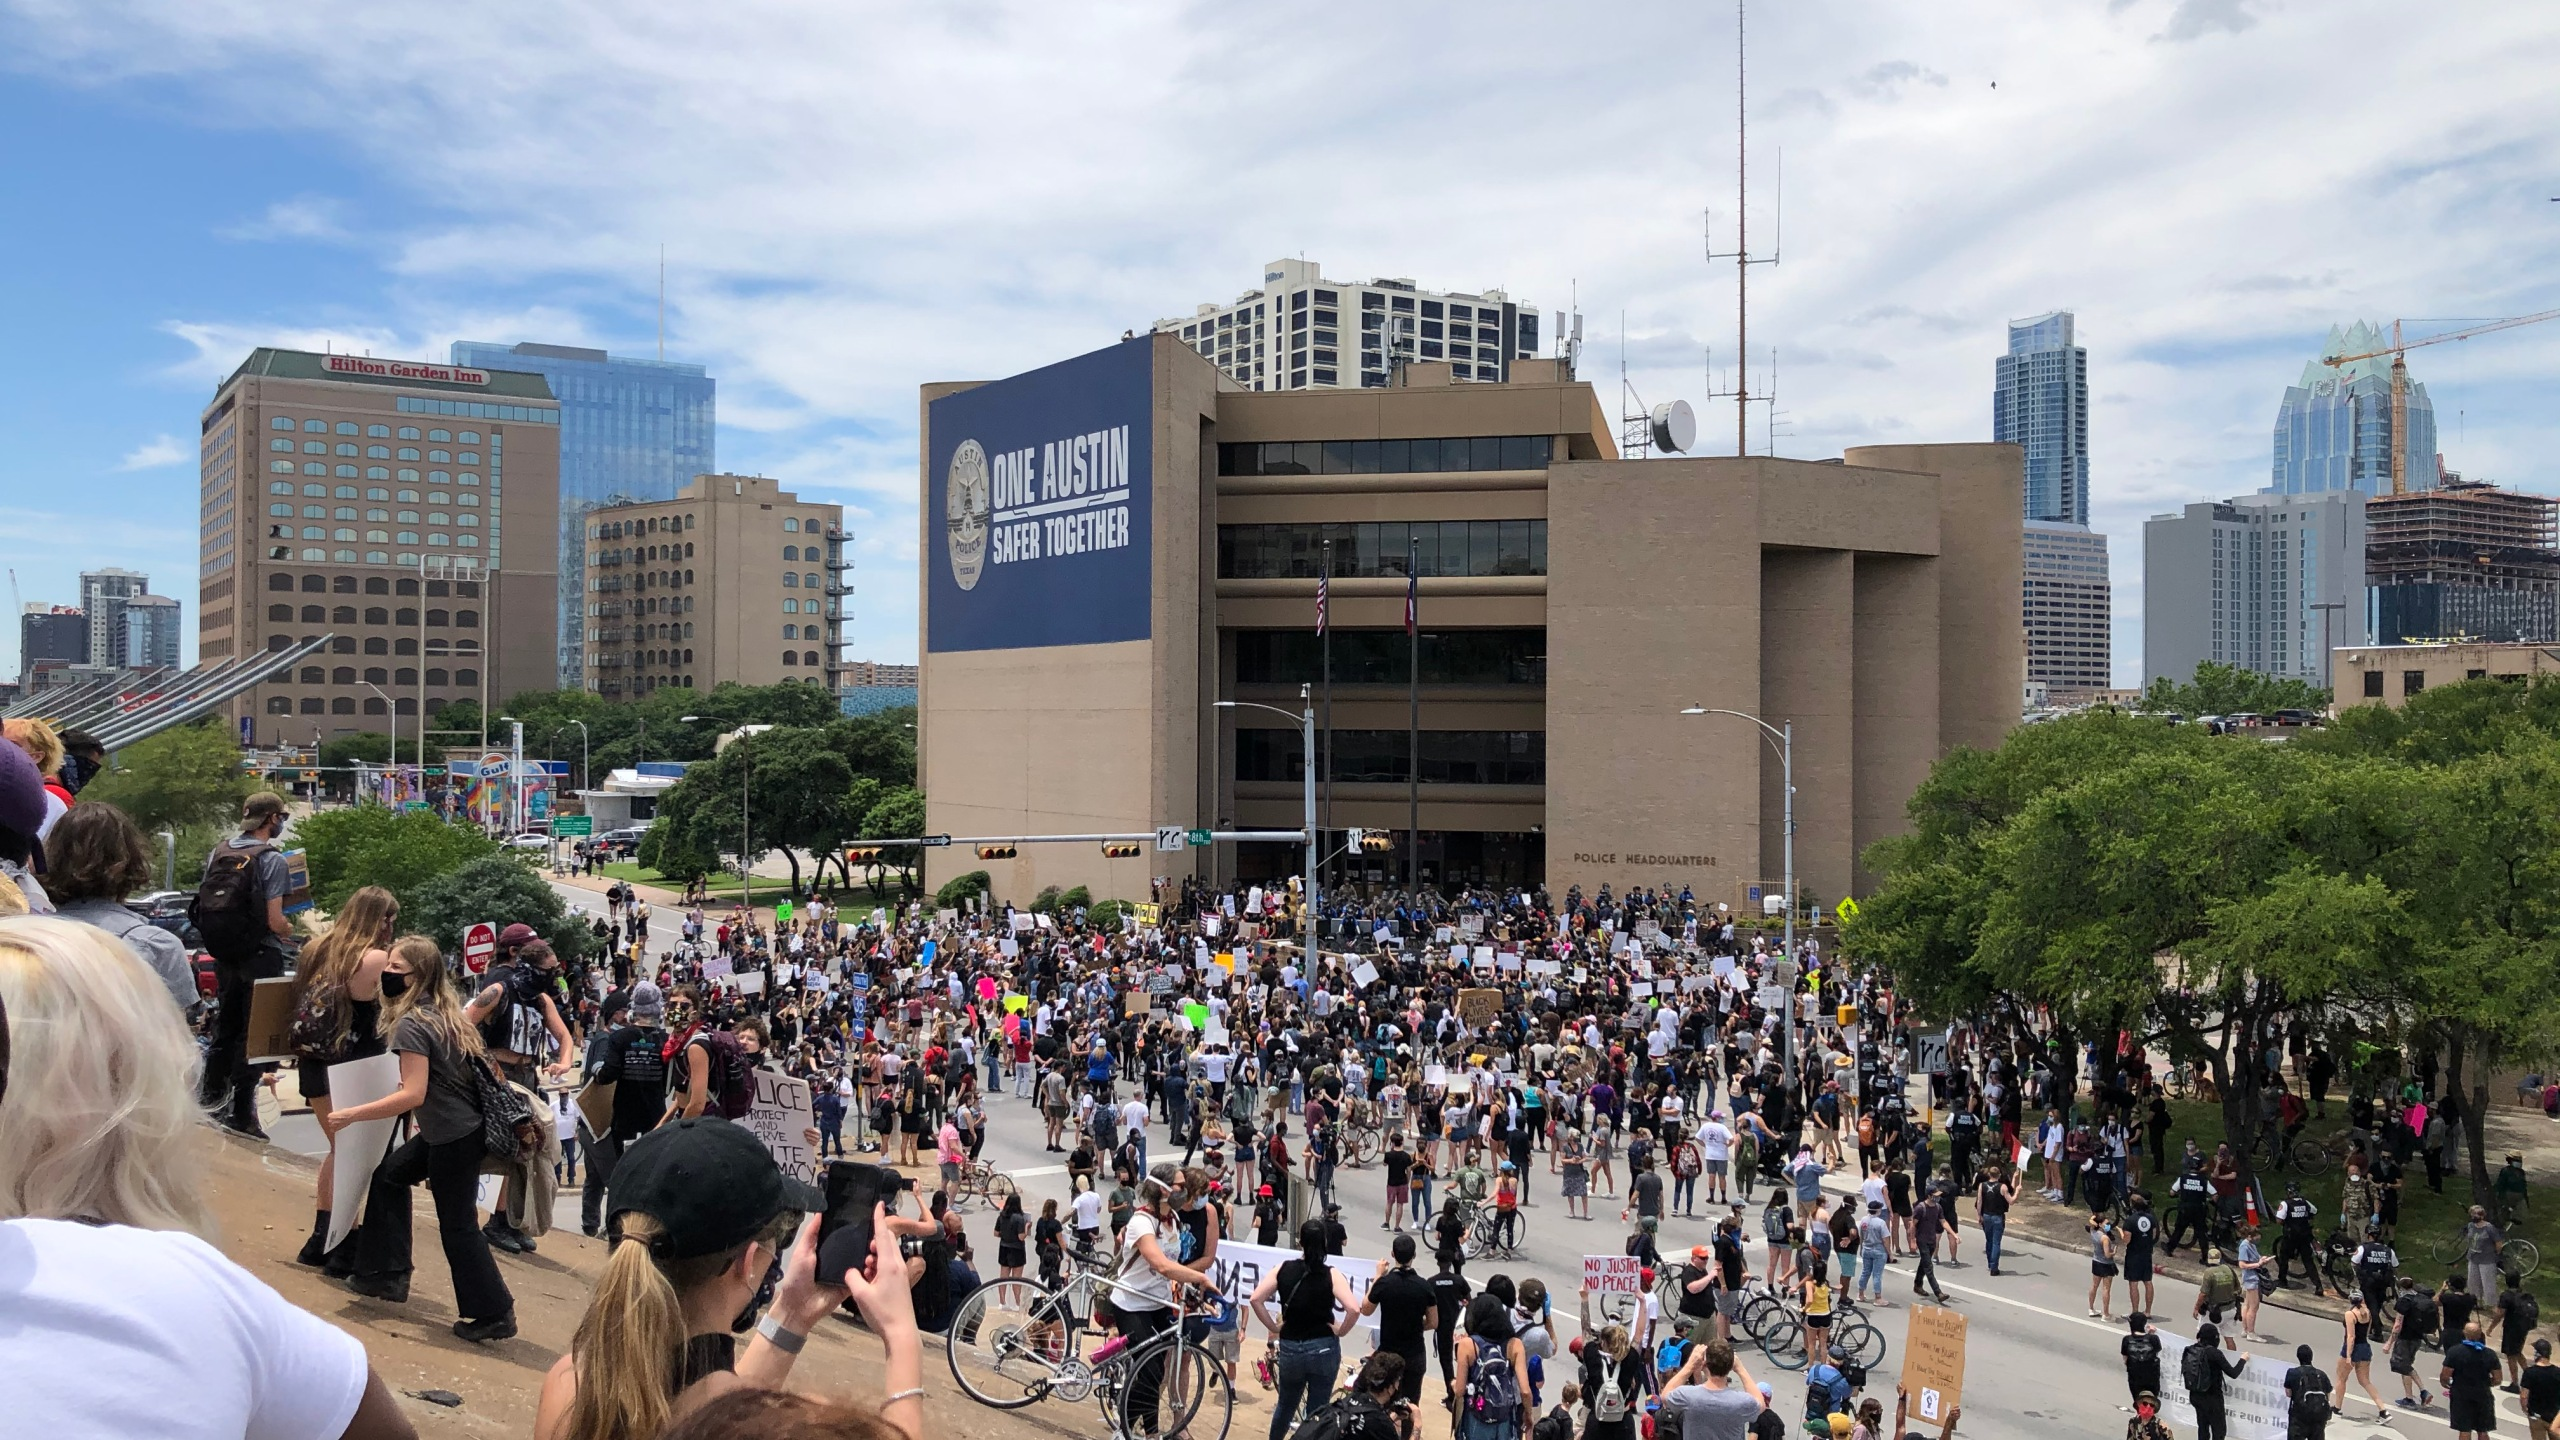 May 30, 2020 protest near APD Headquarters (Photo: George Vance McGee)